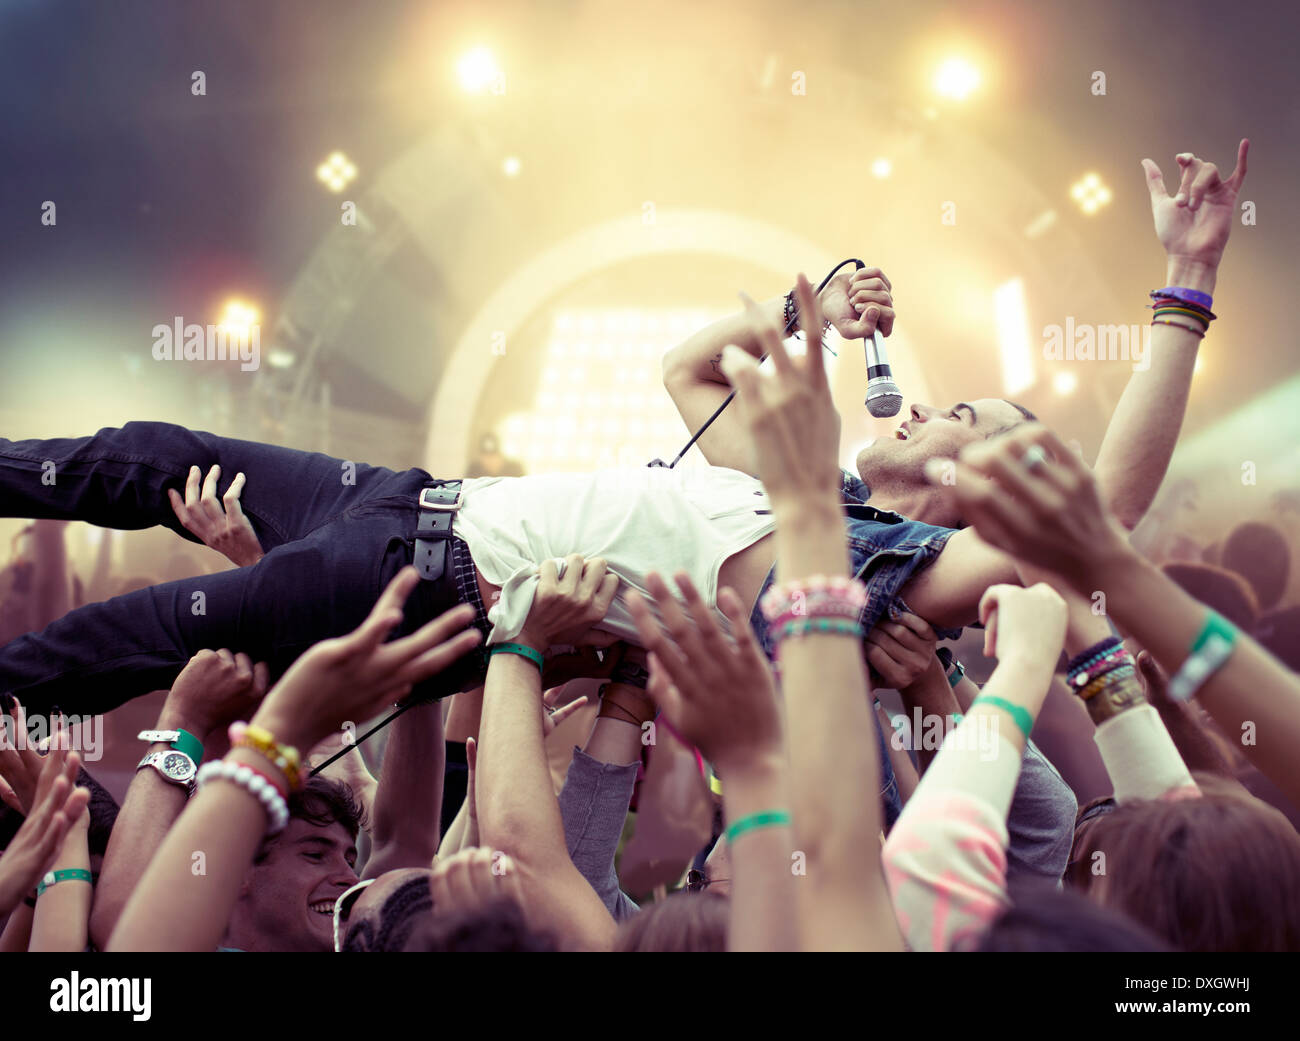 Interprète crowd surfing at music festival Photo Stock